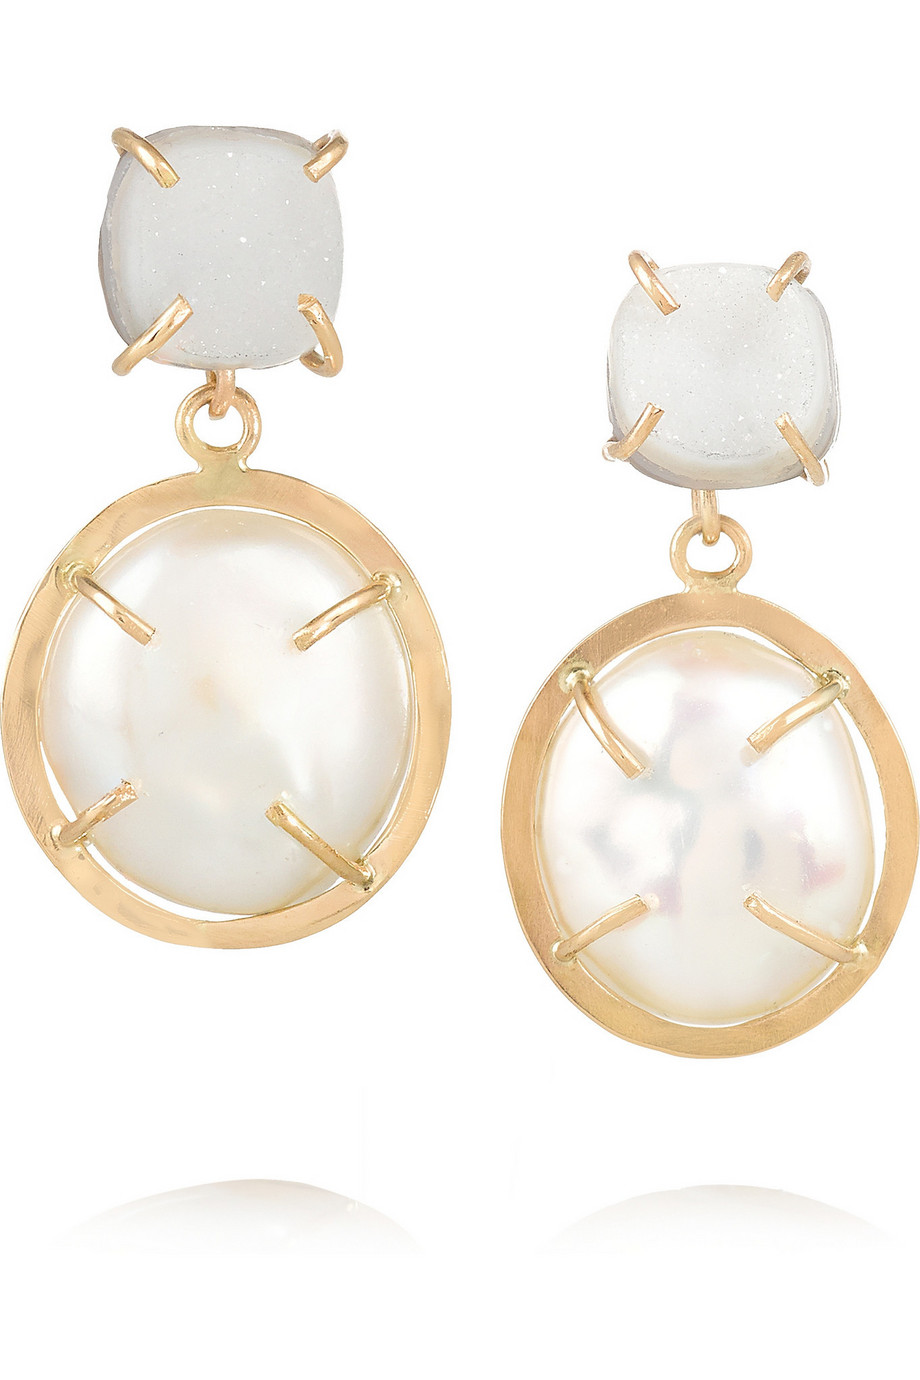 14-Karat Gold, Pearl and Druzy Earrings, Melissa Joy Manning, Women's